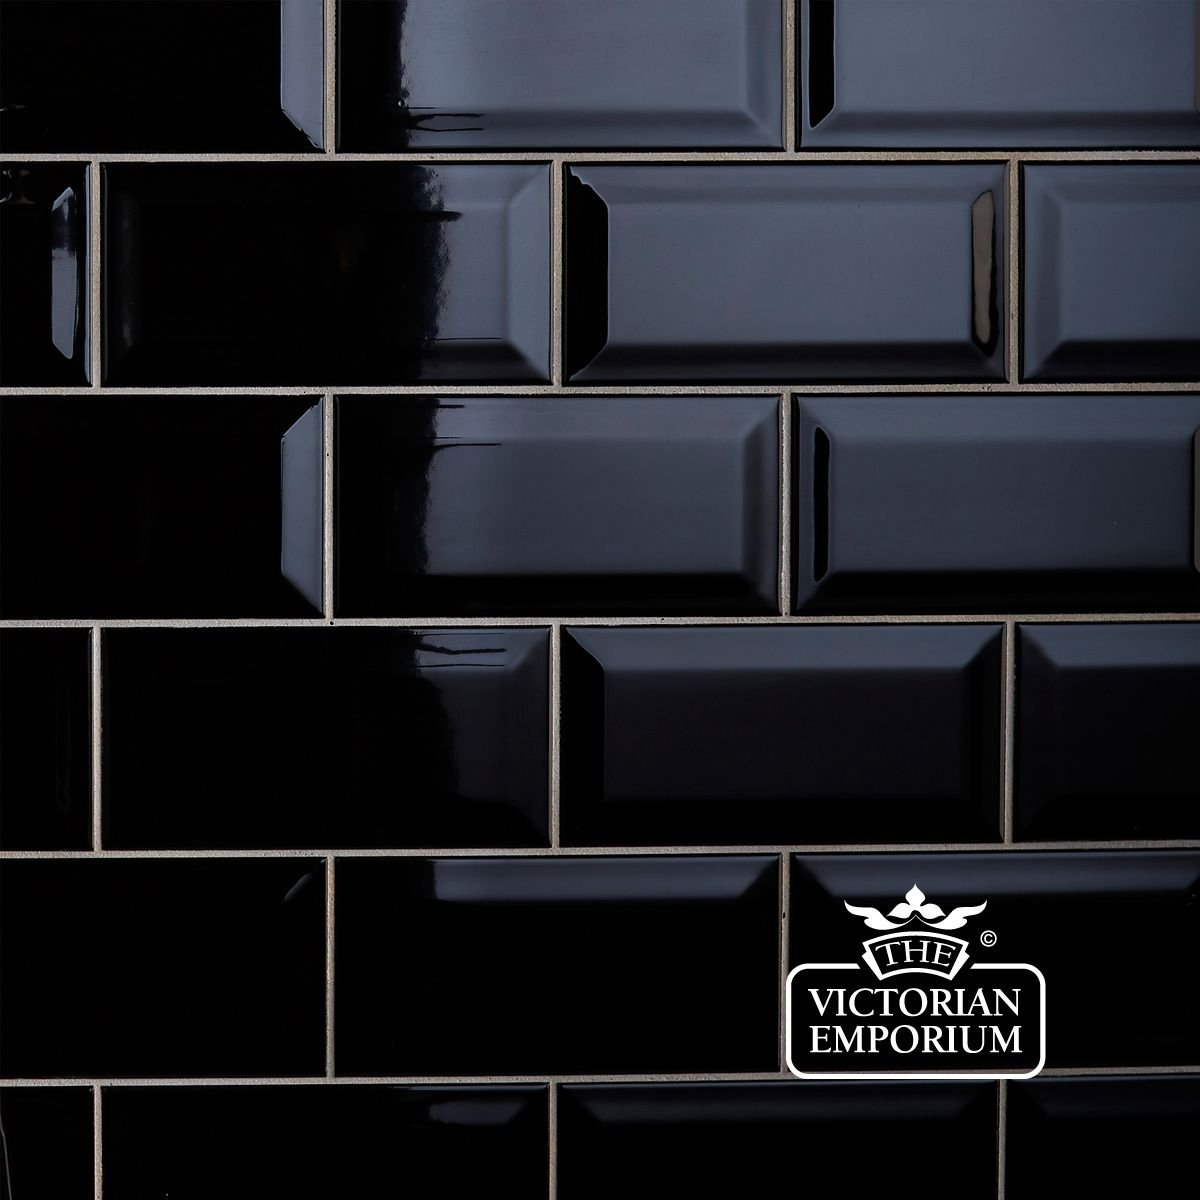 bevel wall tiles 100x200mm black interior ceramic wall 25 melhores ideias de paredes pintadas de preto no